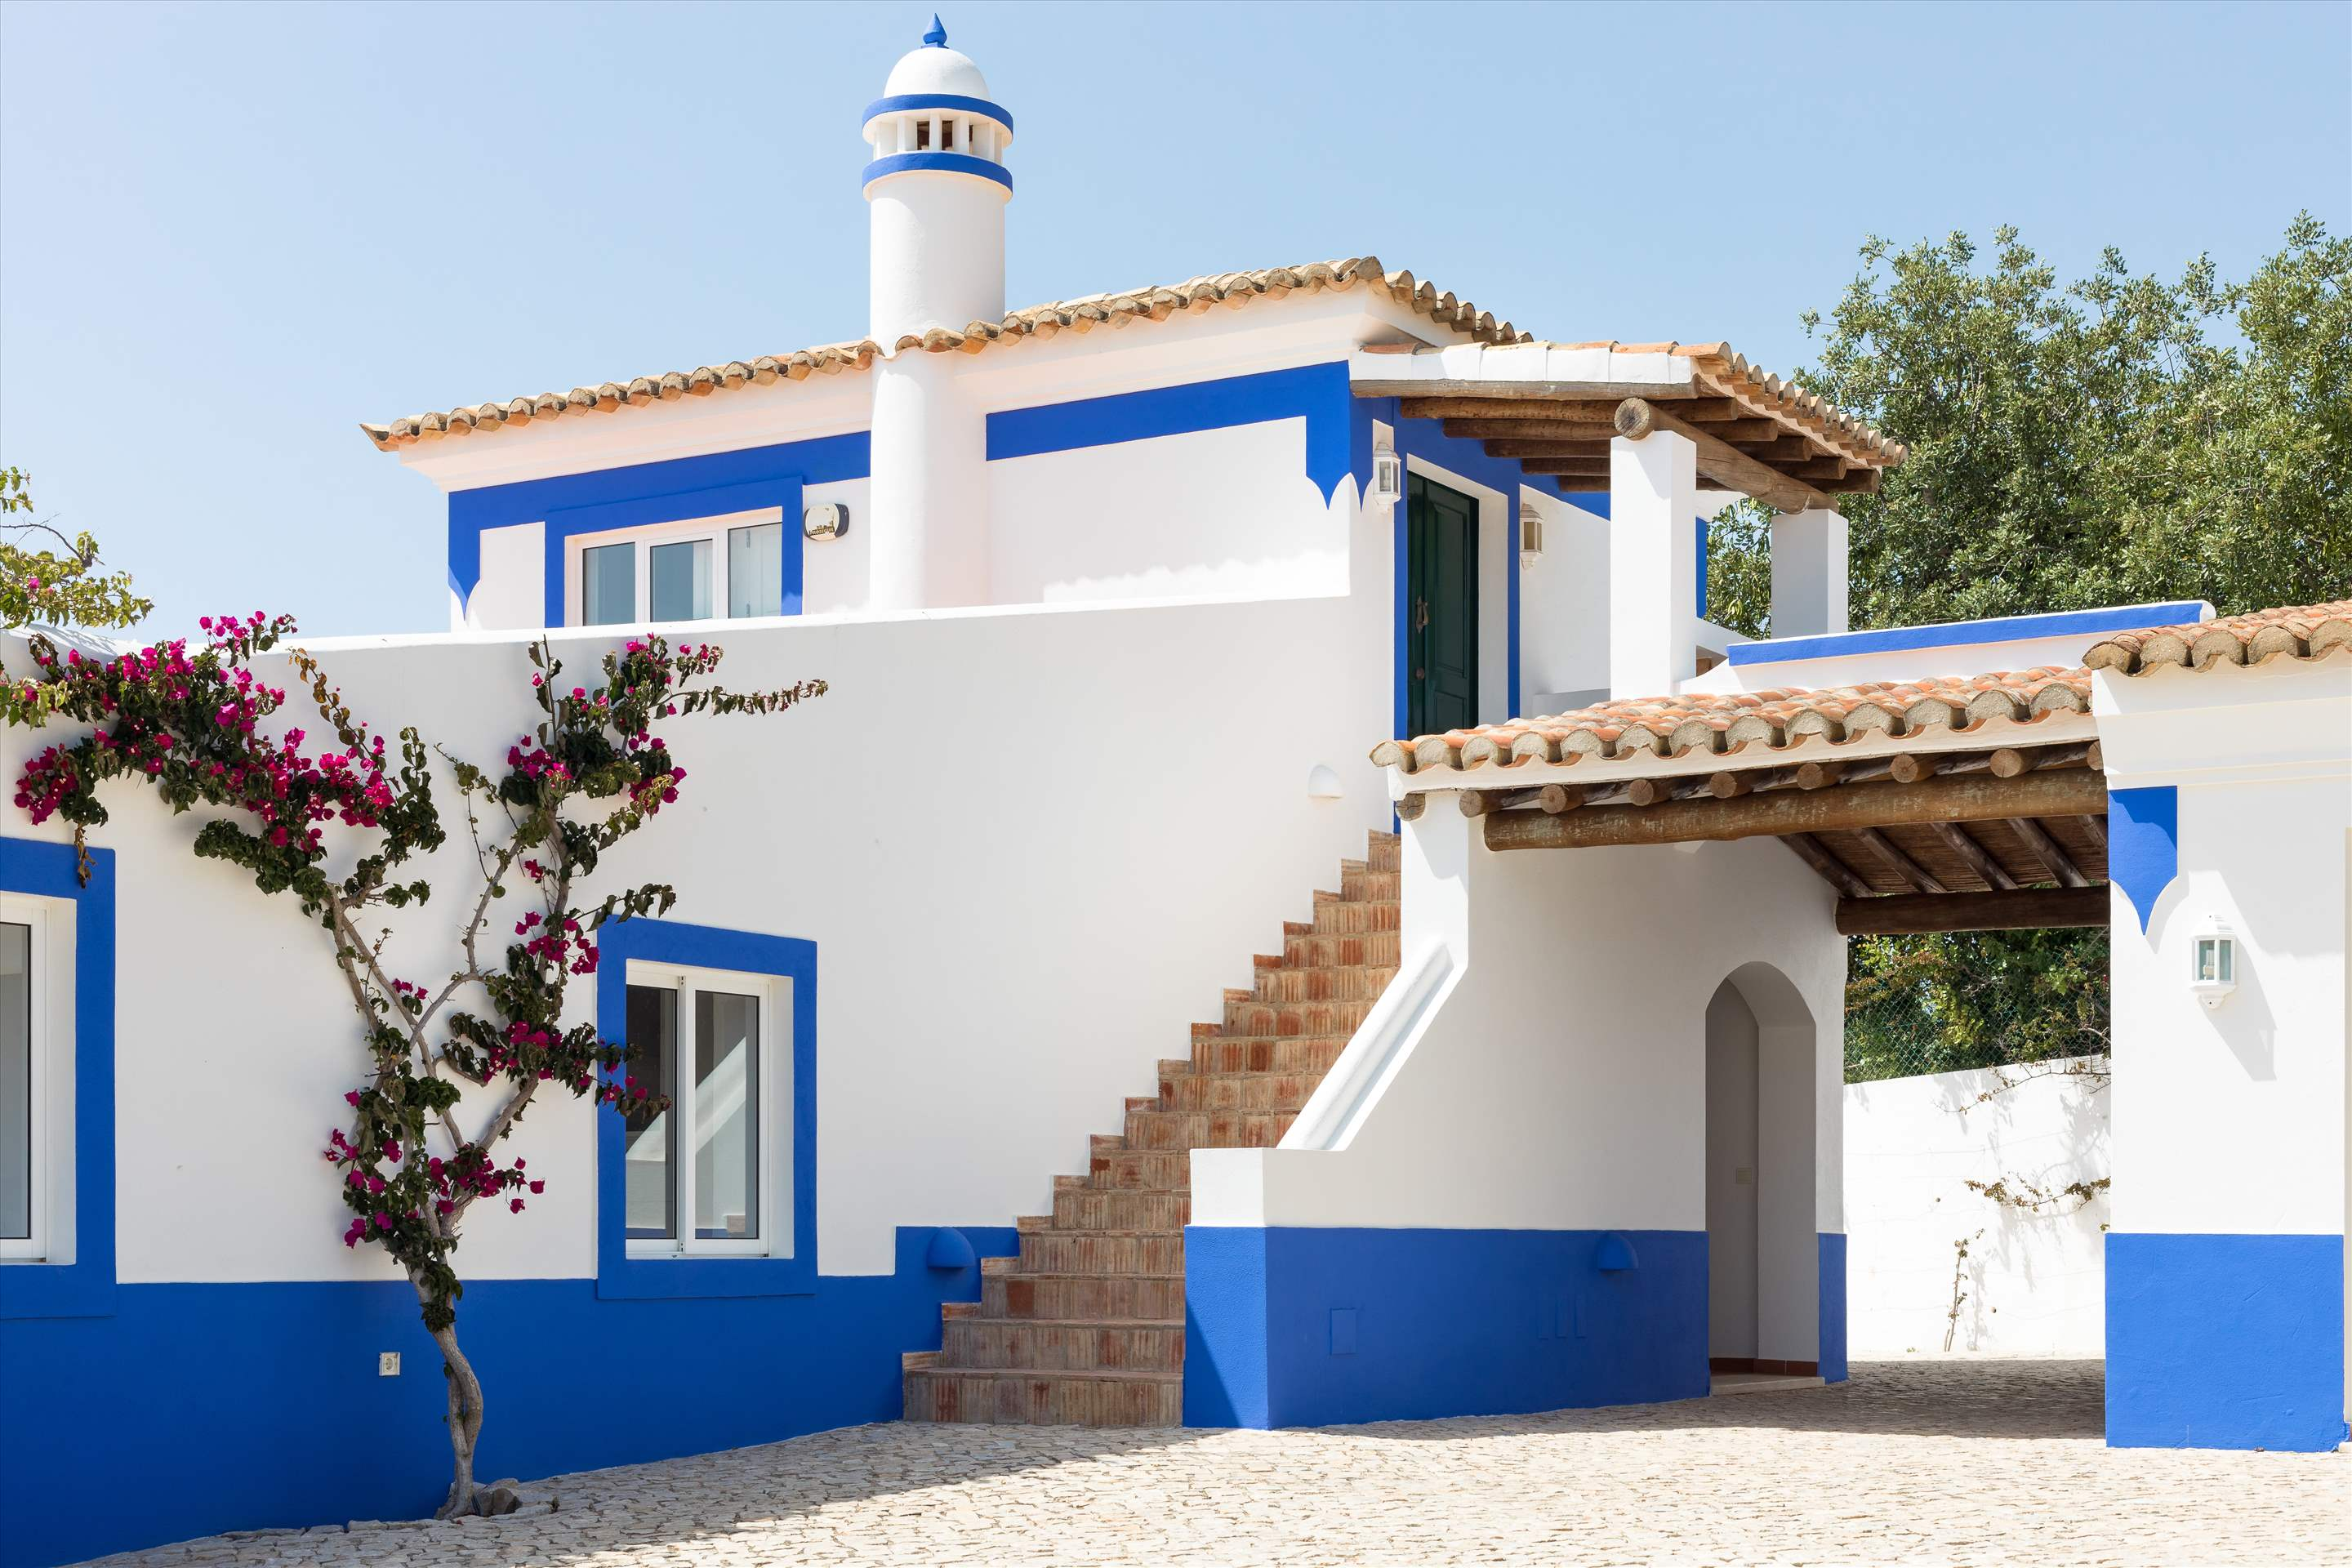 Casa da Montanha, 13-14 persons, 8 bedroom villa in Vilamoura Area, Algarve Photo #18